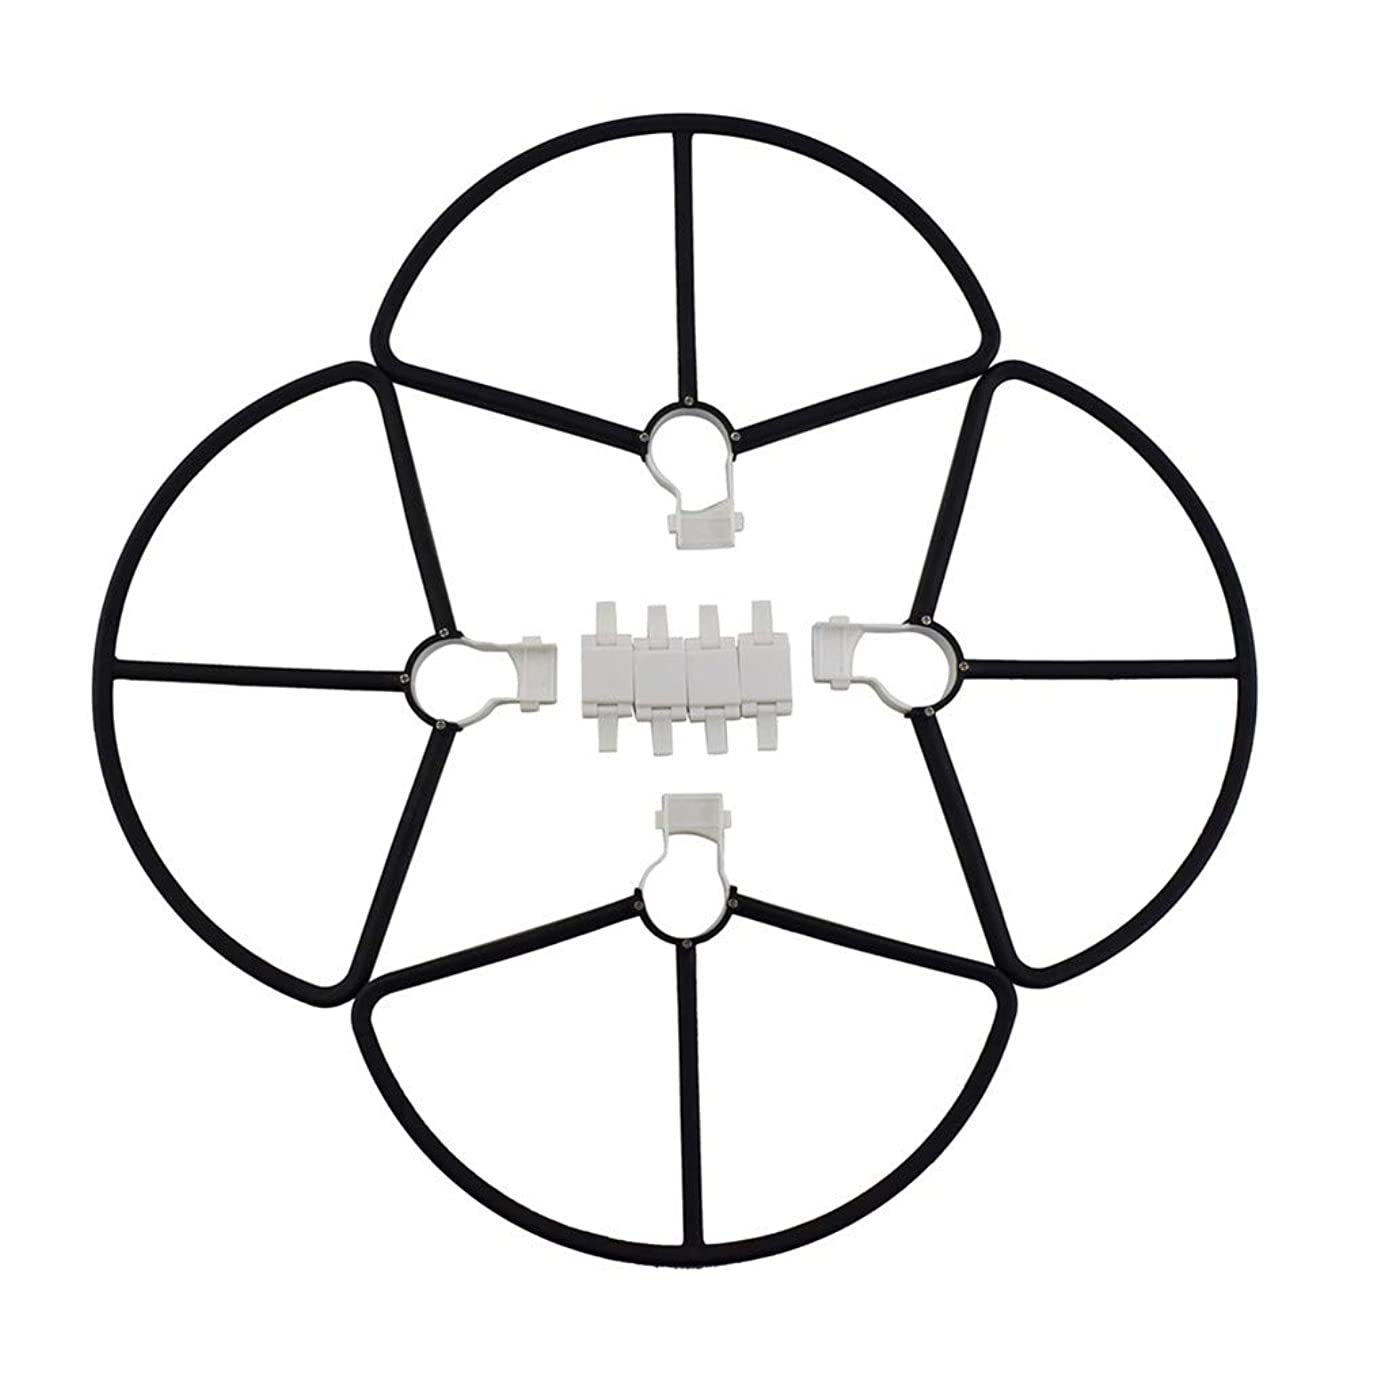 Solovley Drone Accessories, Quick Release Protective Cover for Hubsan Zino H117S Drone Accessories (4 Pc) (Black)